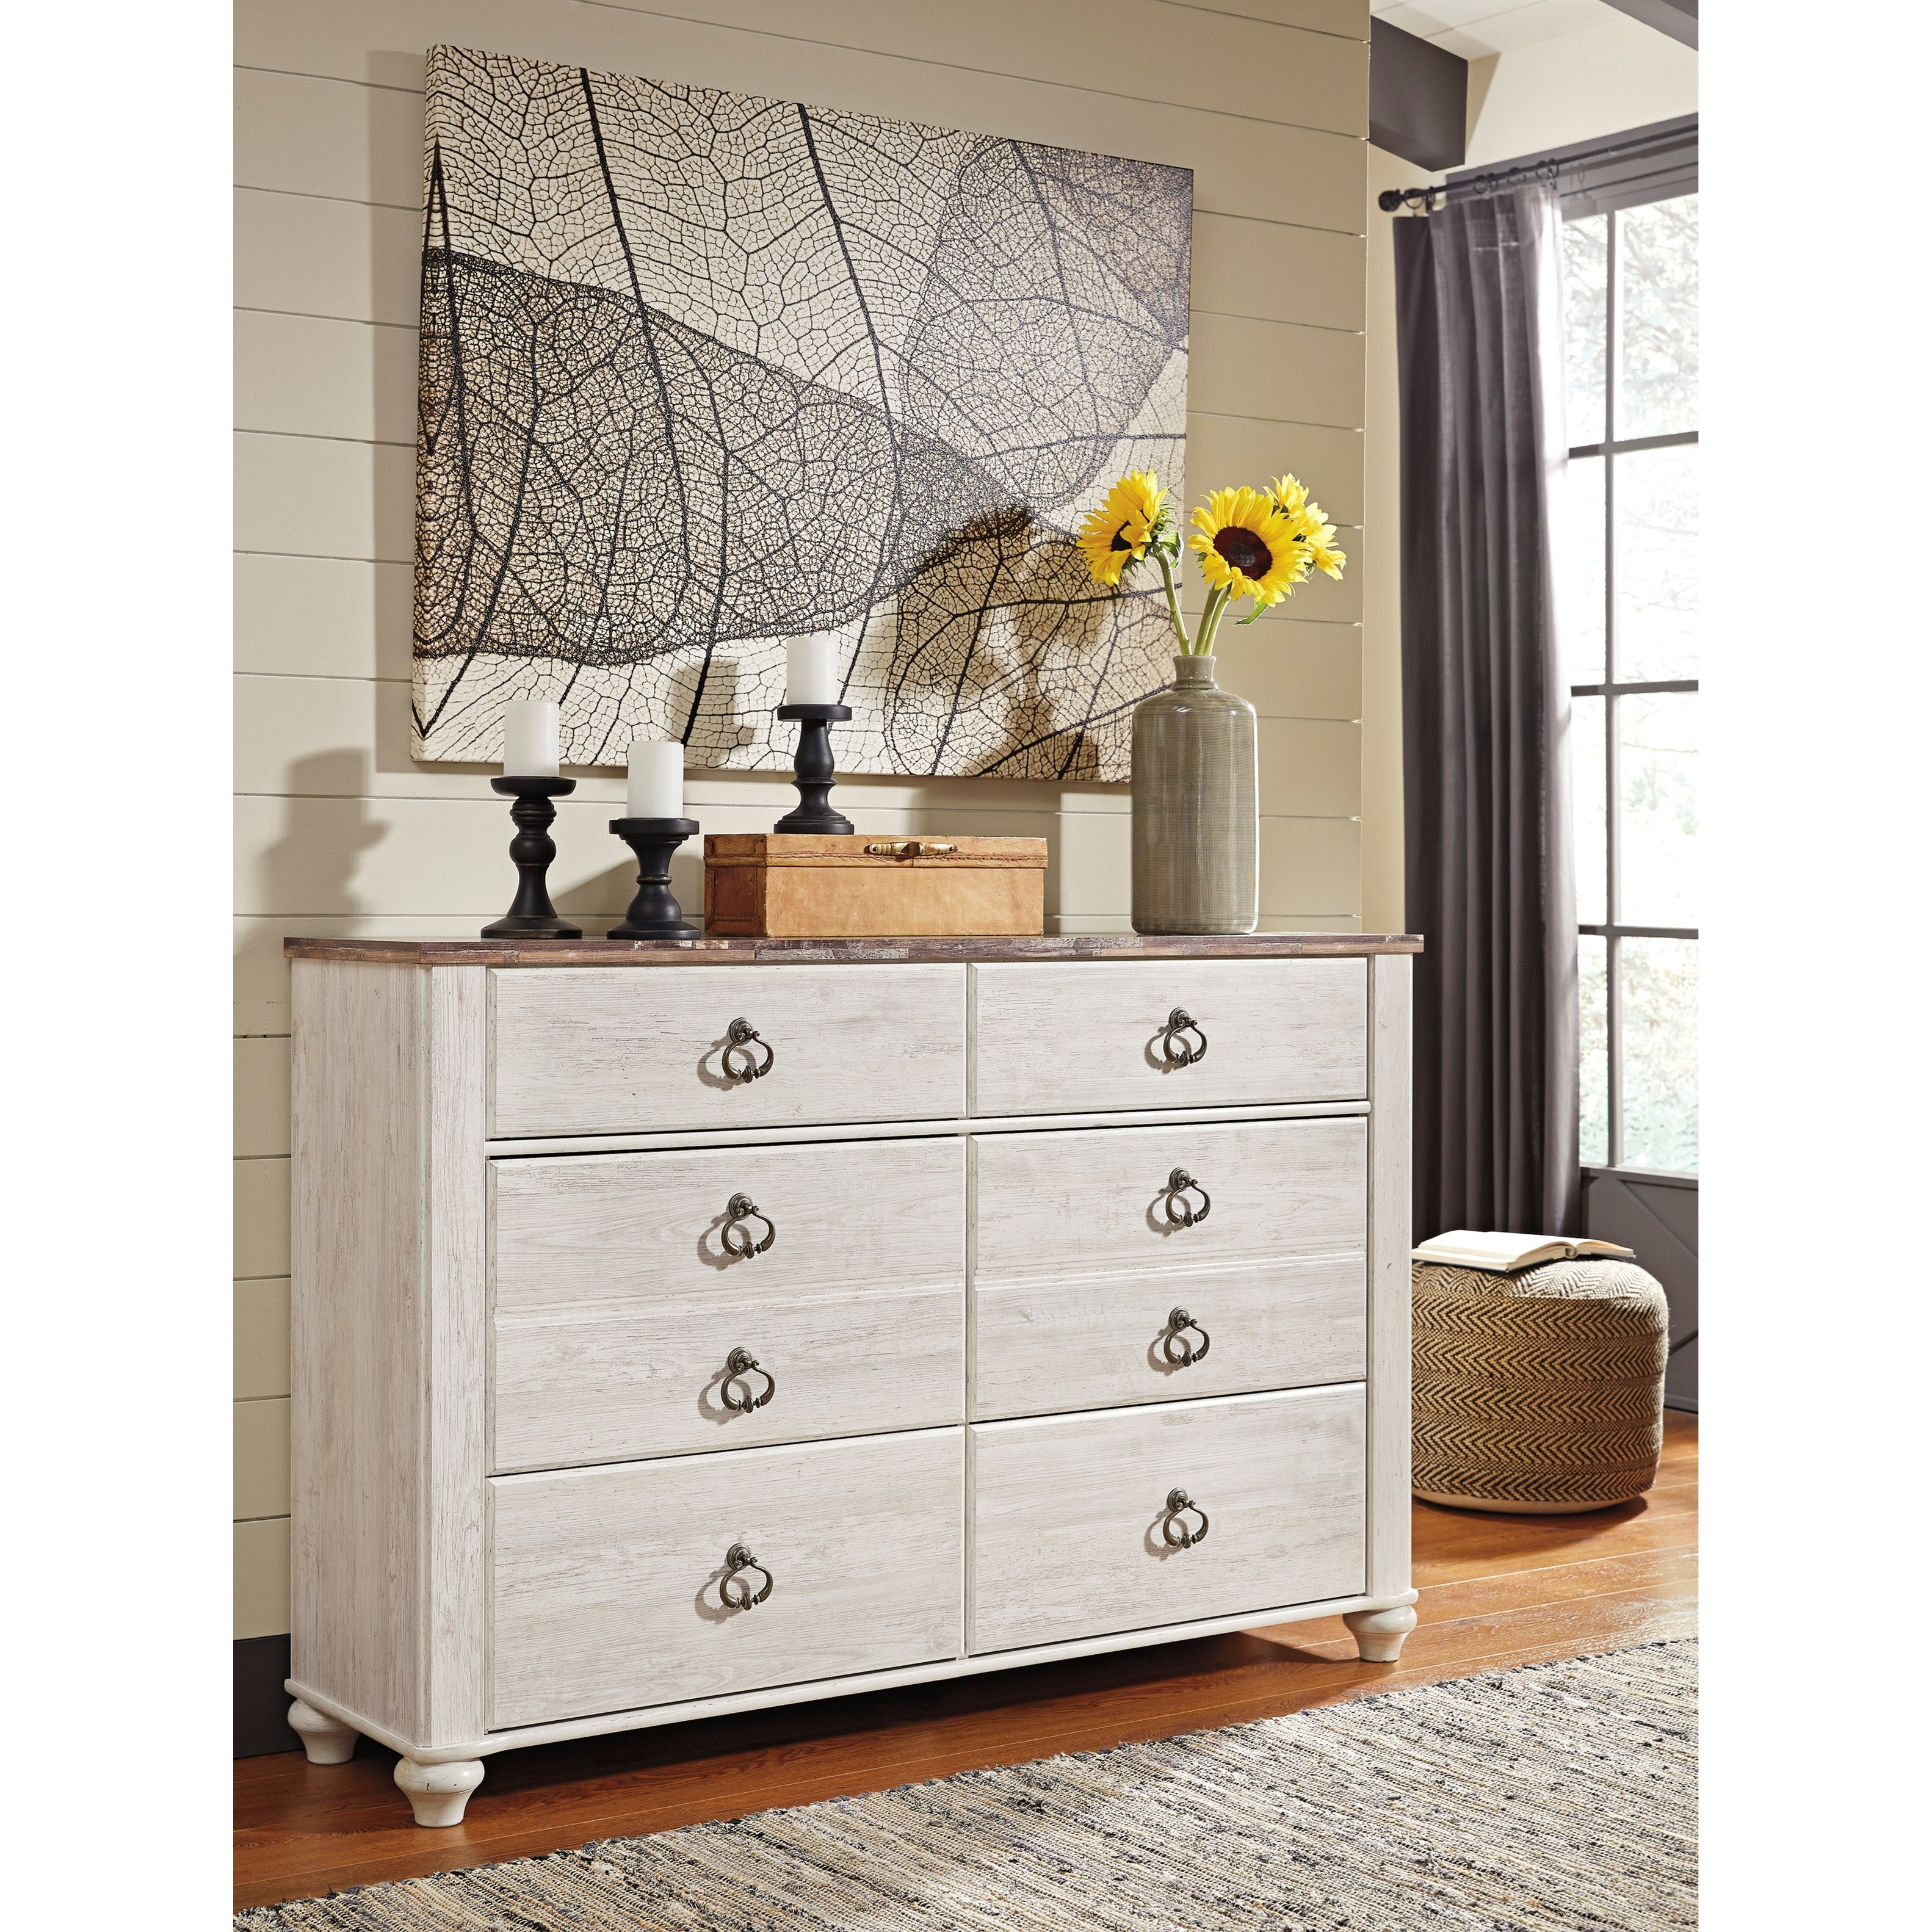 Signature Design By Ashley Willowton 6 Drawer Dresser With